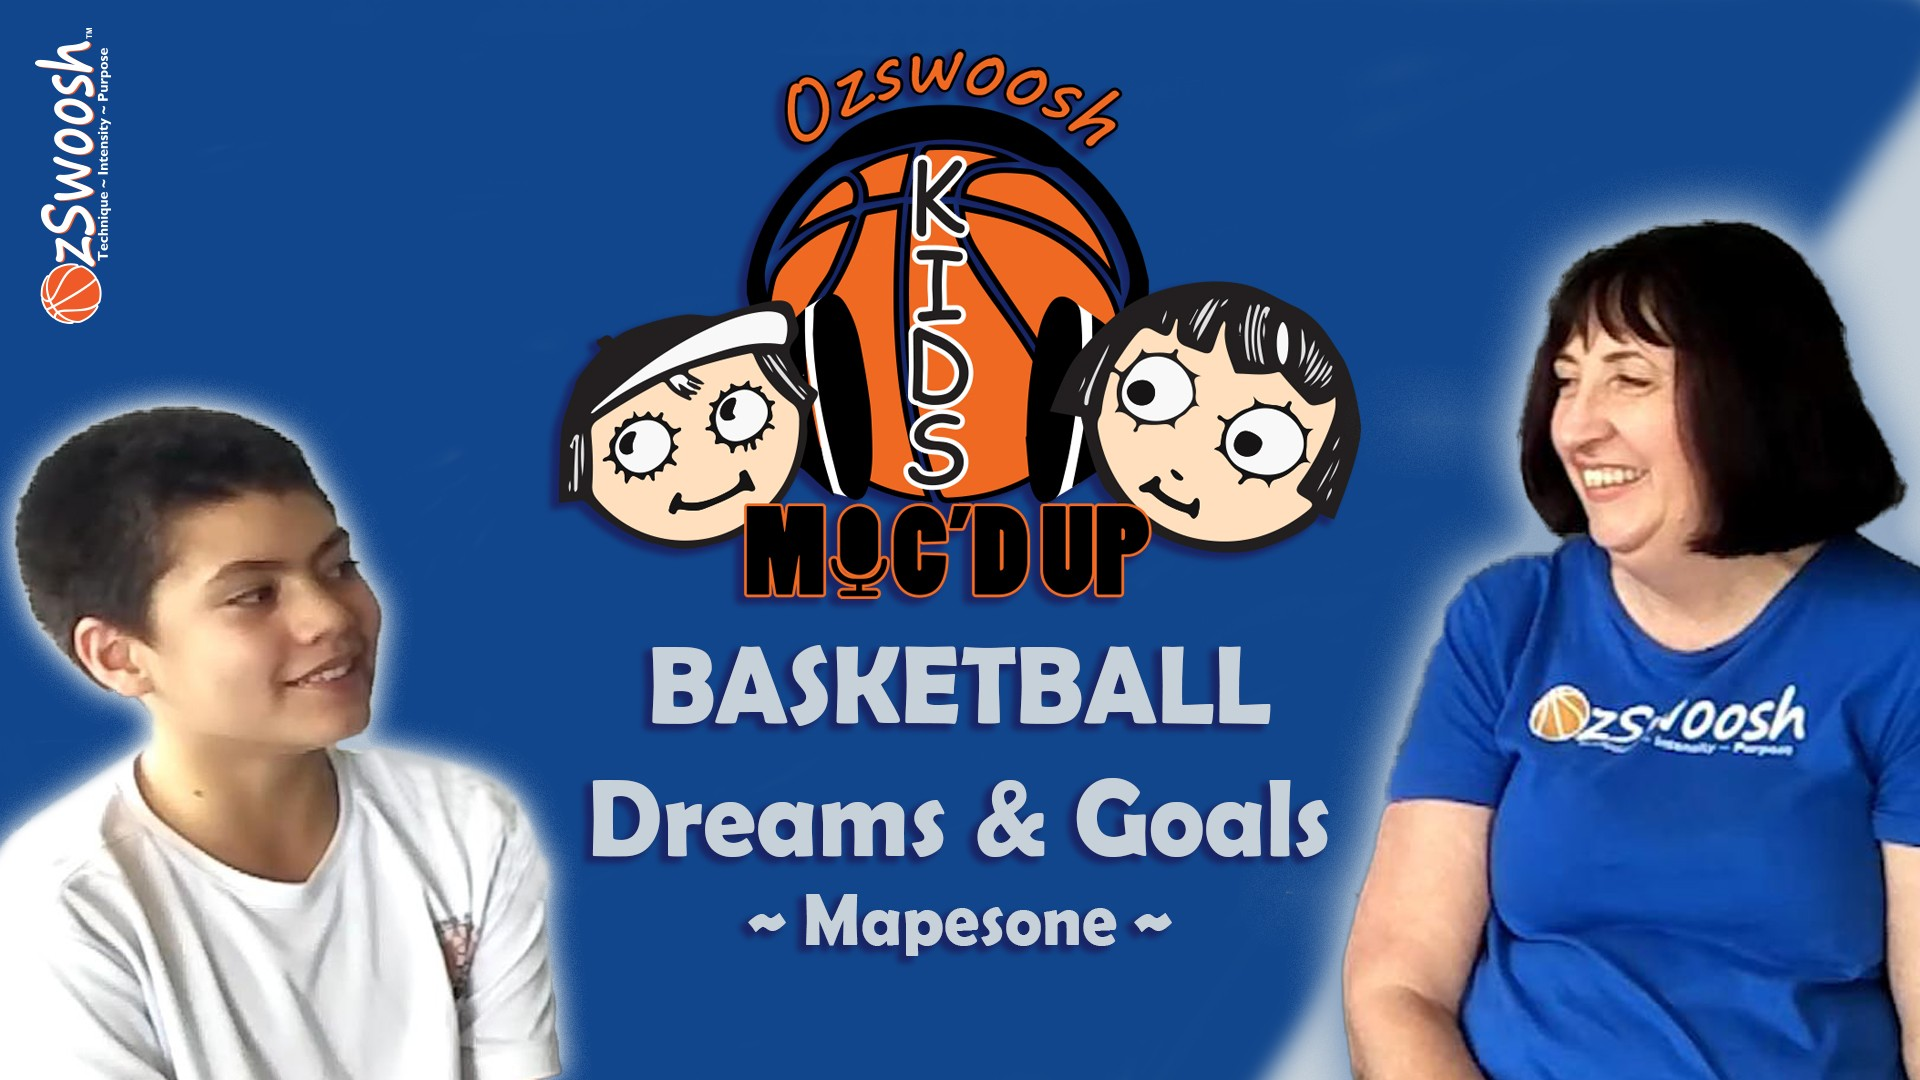 basketball dreams and goals - OzSwoosh Rookie Mapesone